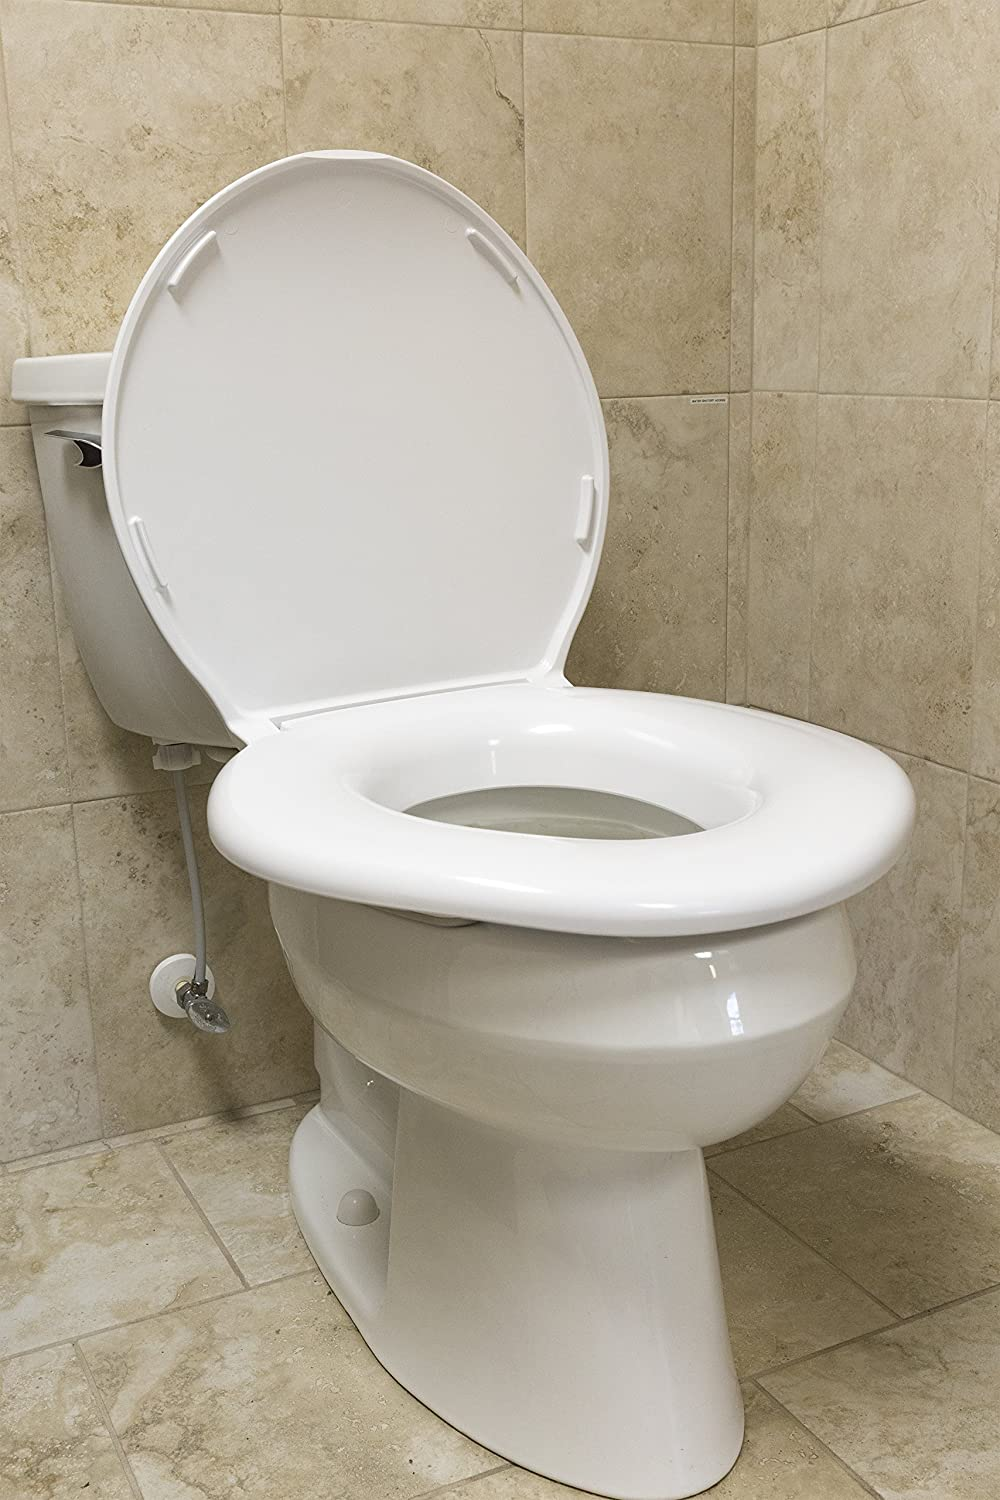 Best Elongated Toilet Seat For Heavy Person